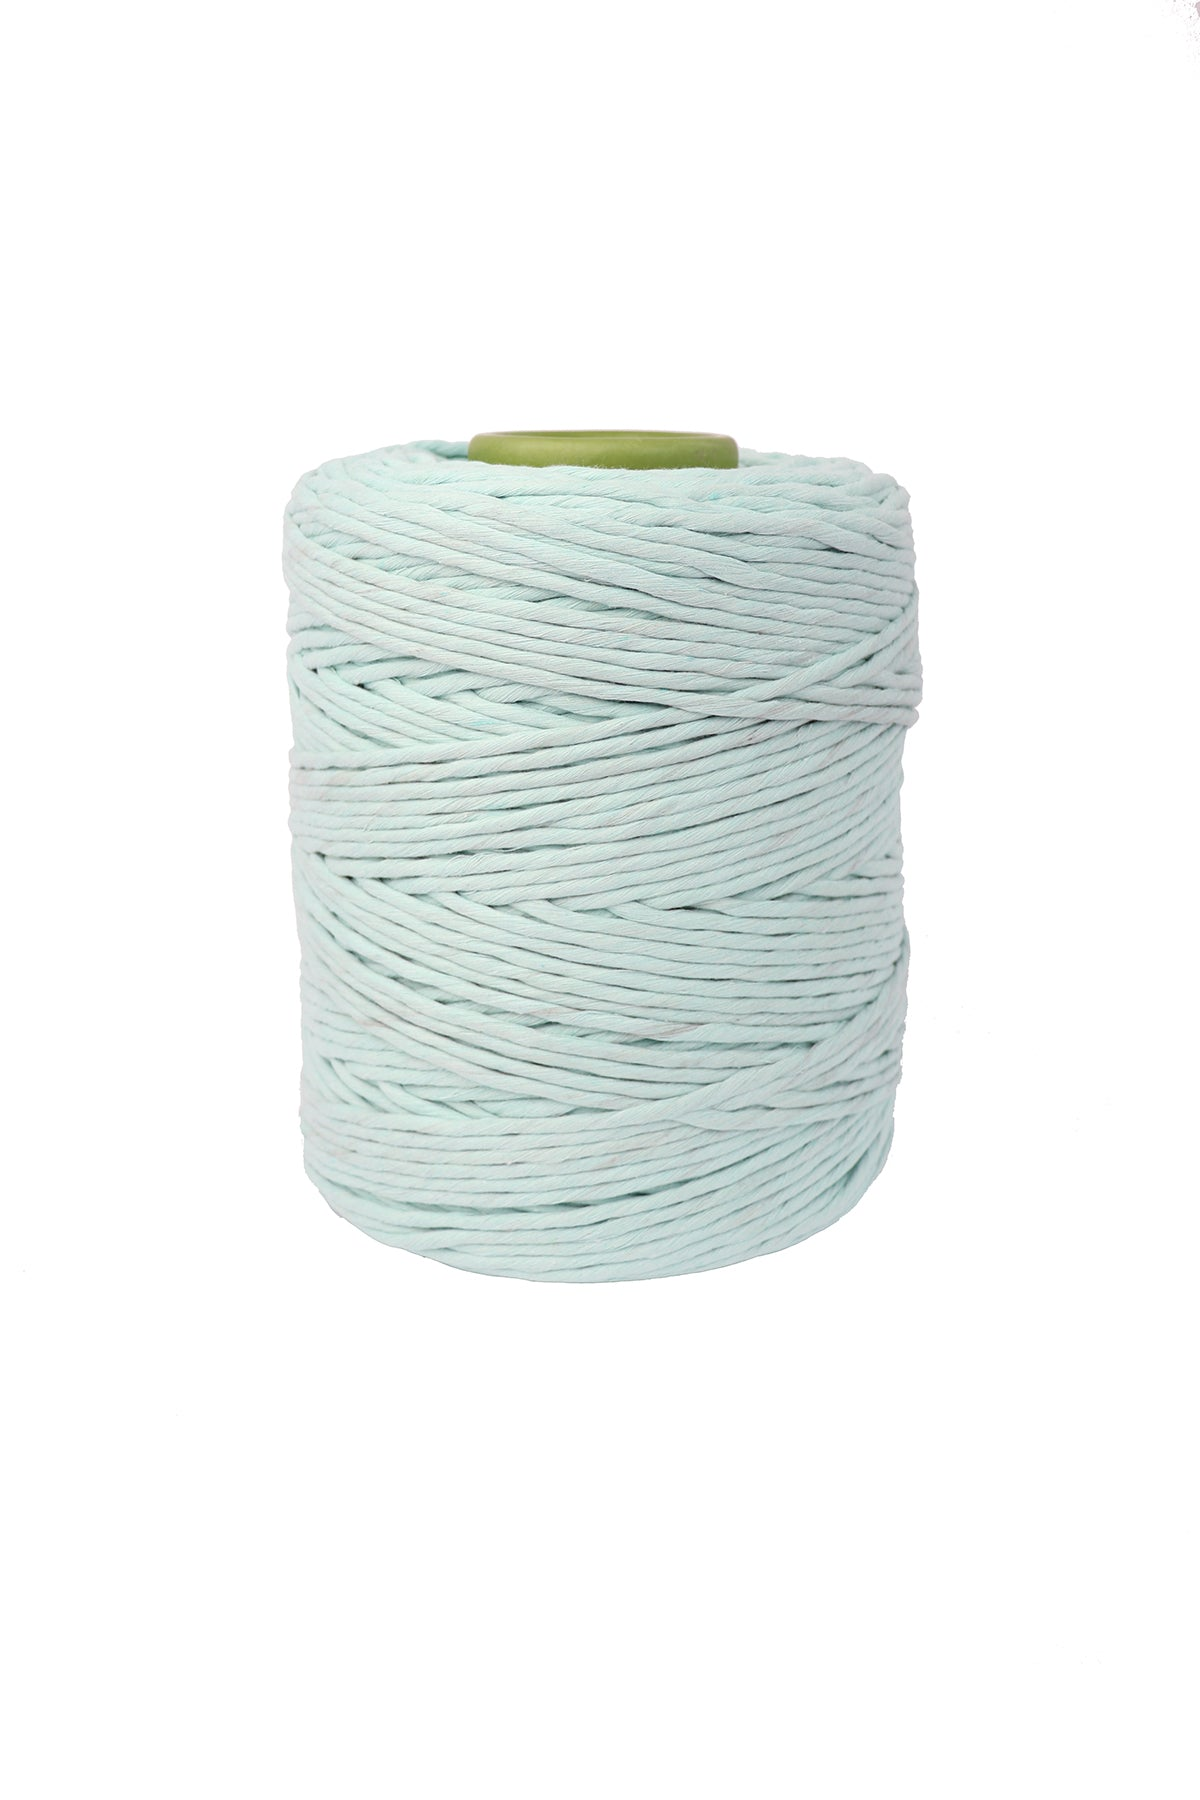 4mm 100% Cotton single ply String in 20 vibrant colors for Macrame and craft